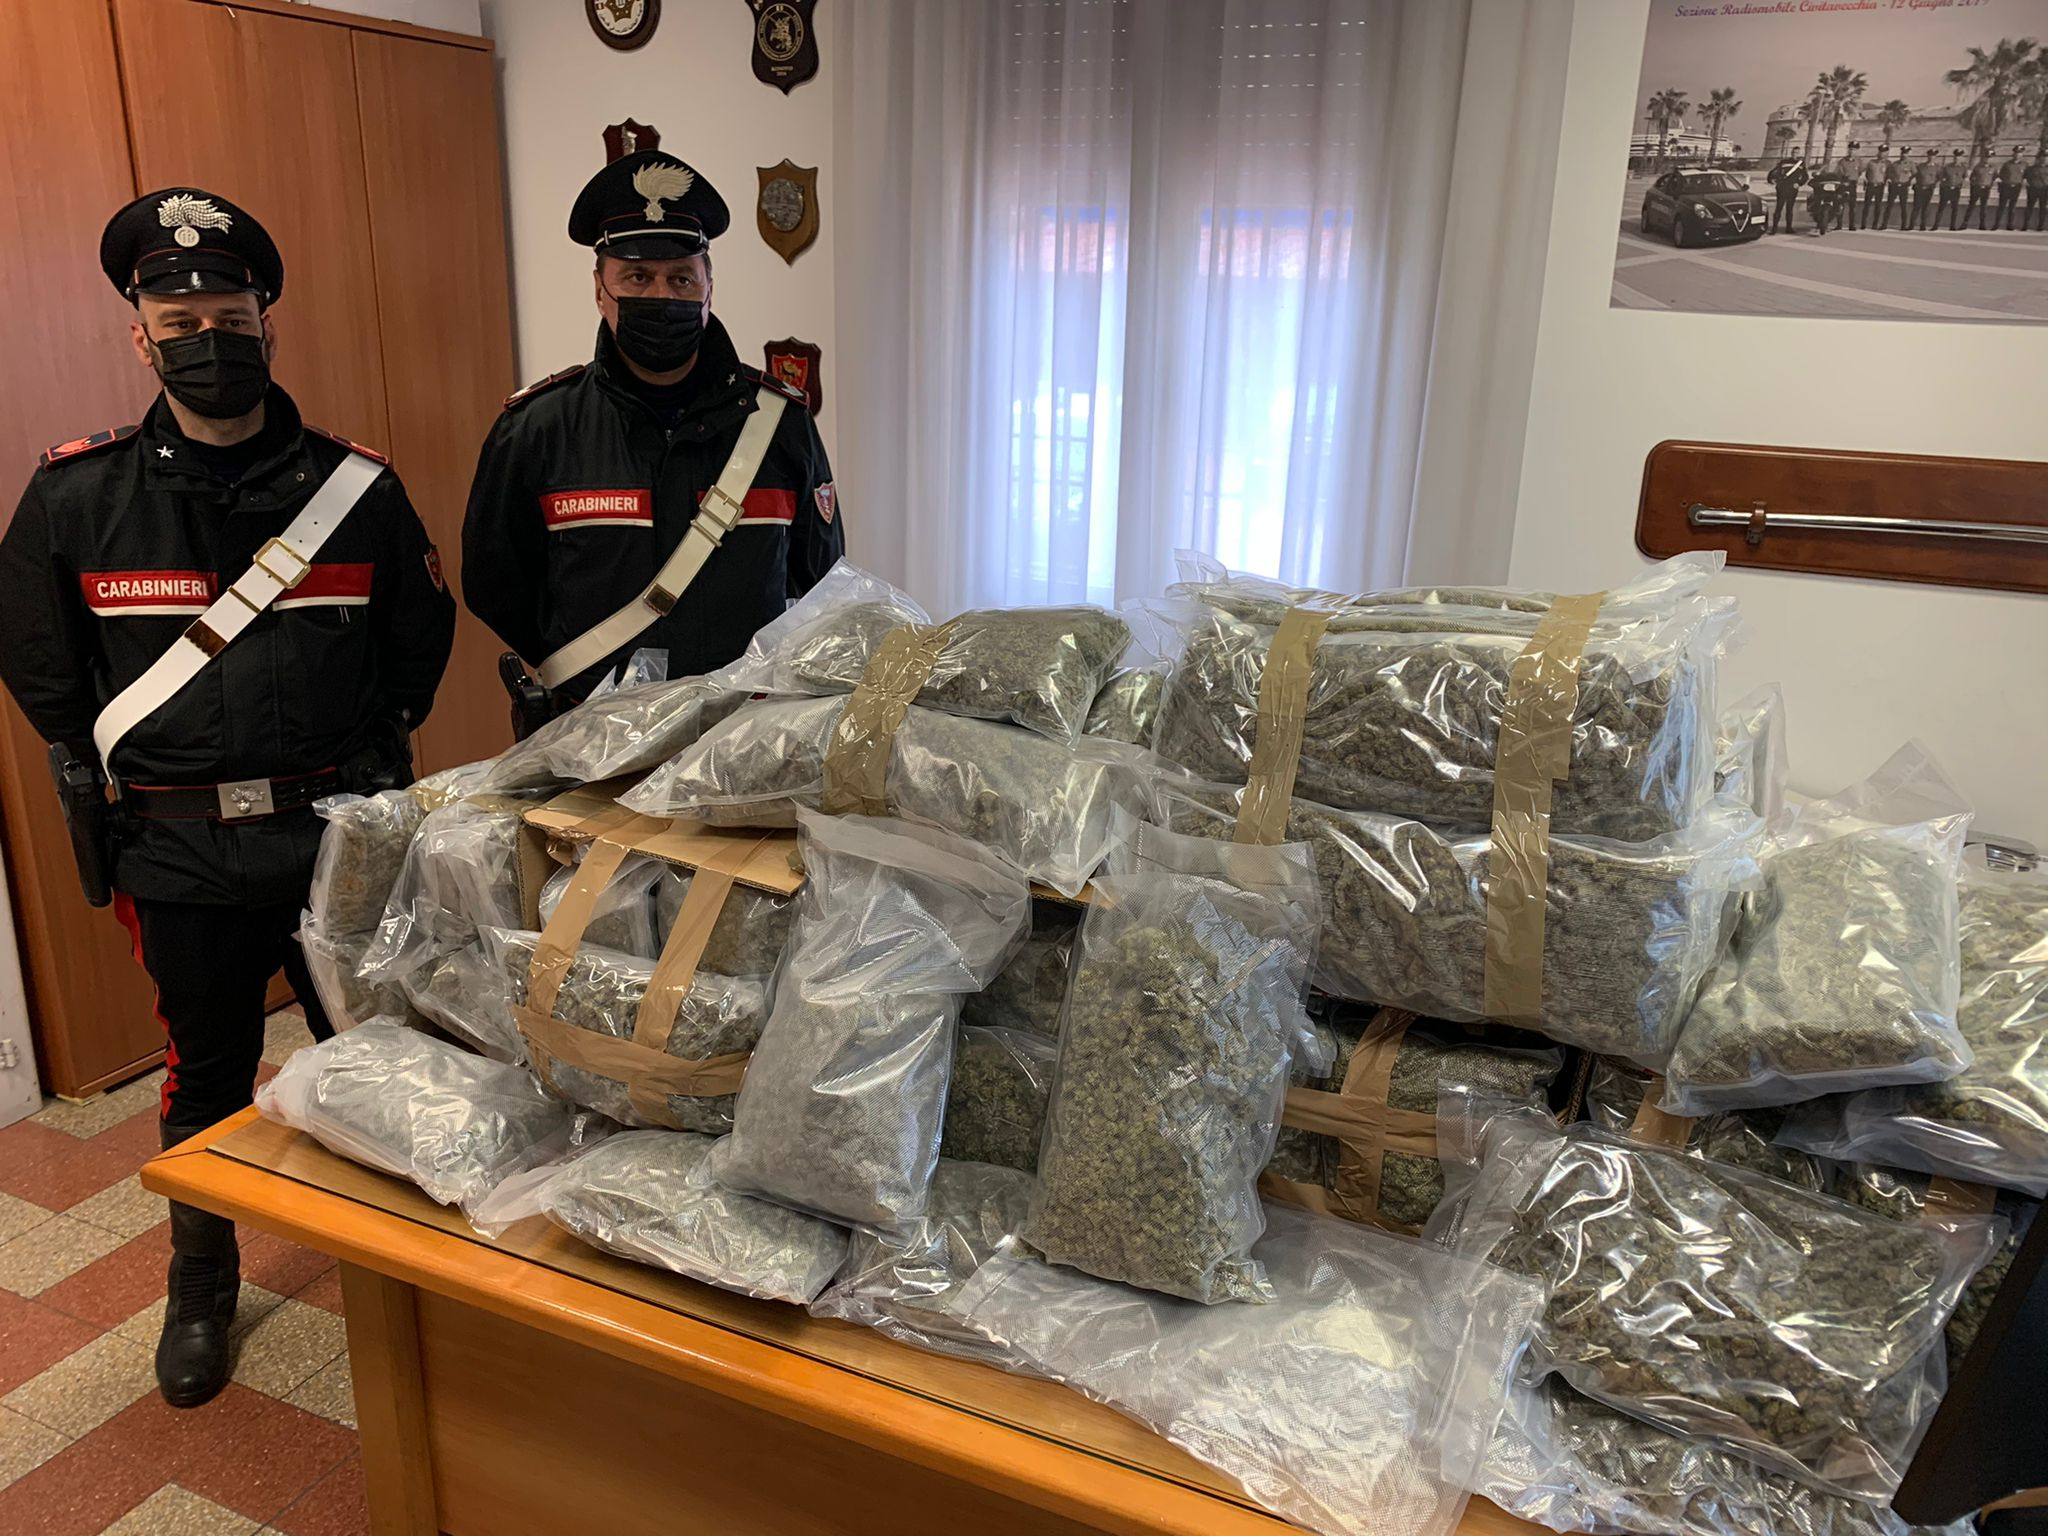 In auto con 60 chili di marijuana: arrestato